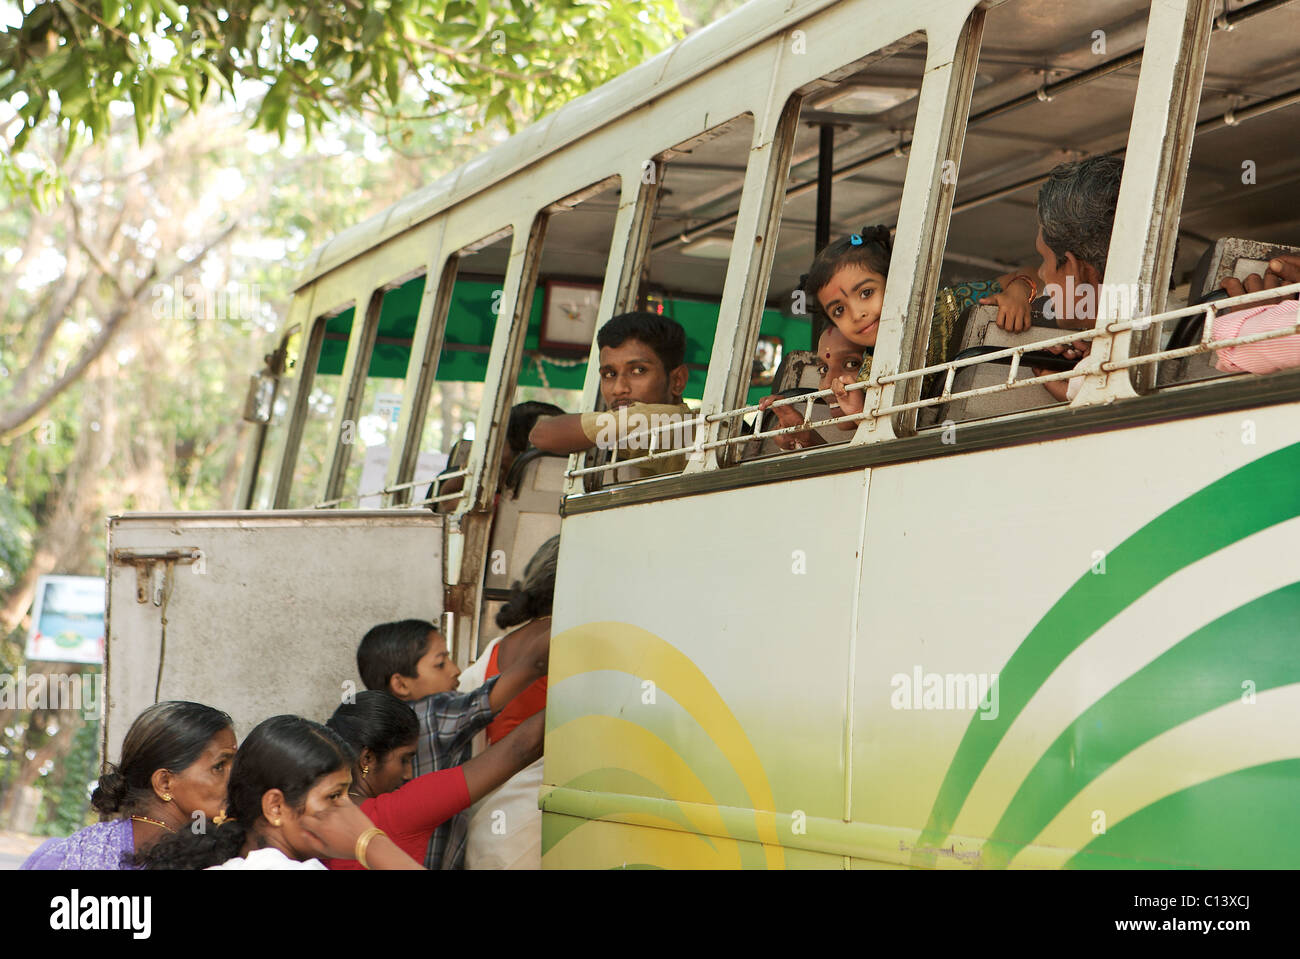 A child peeps out of a bus window, Kerala, india - Stock Image